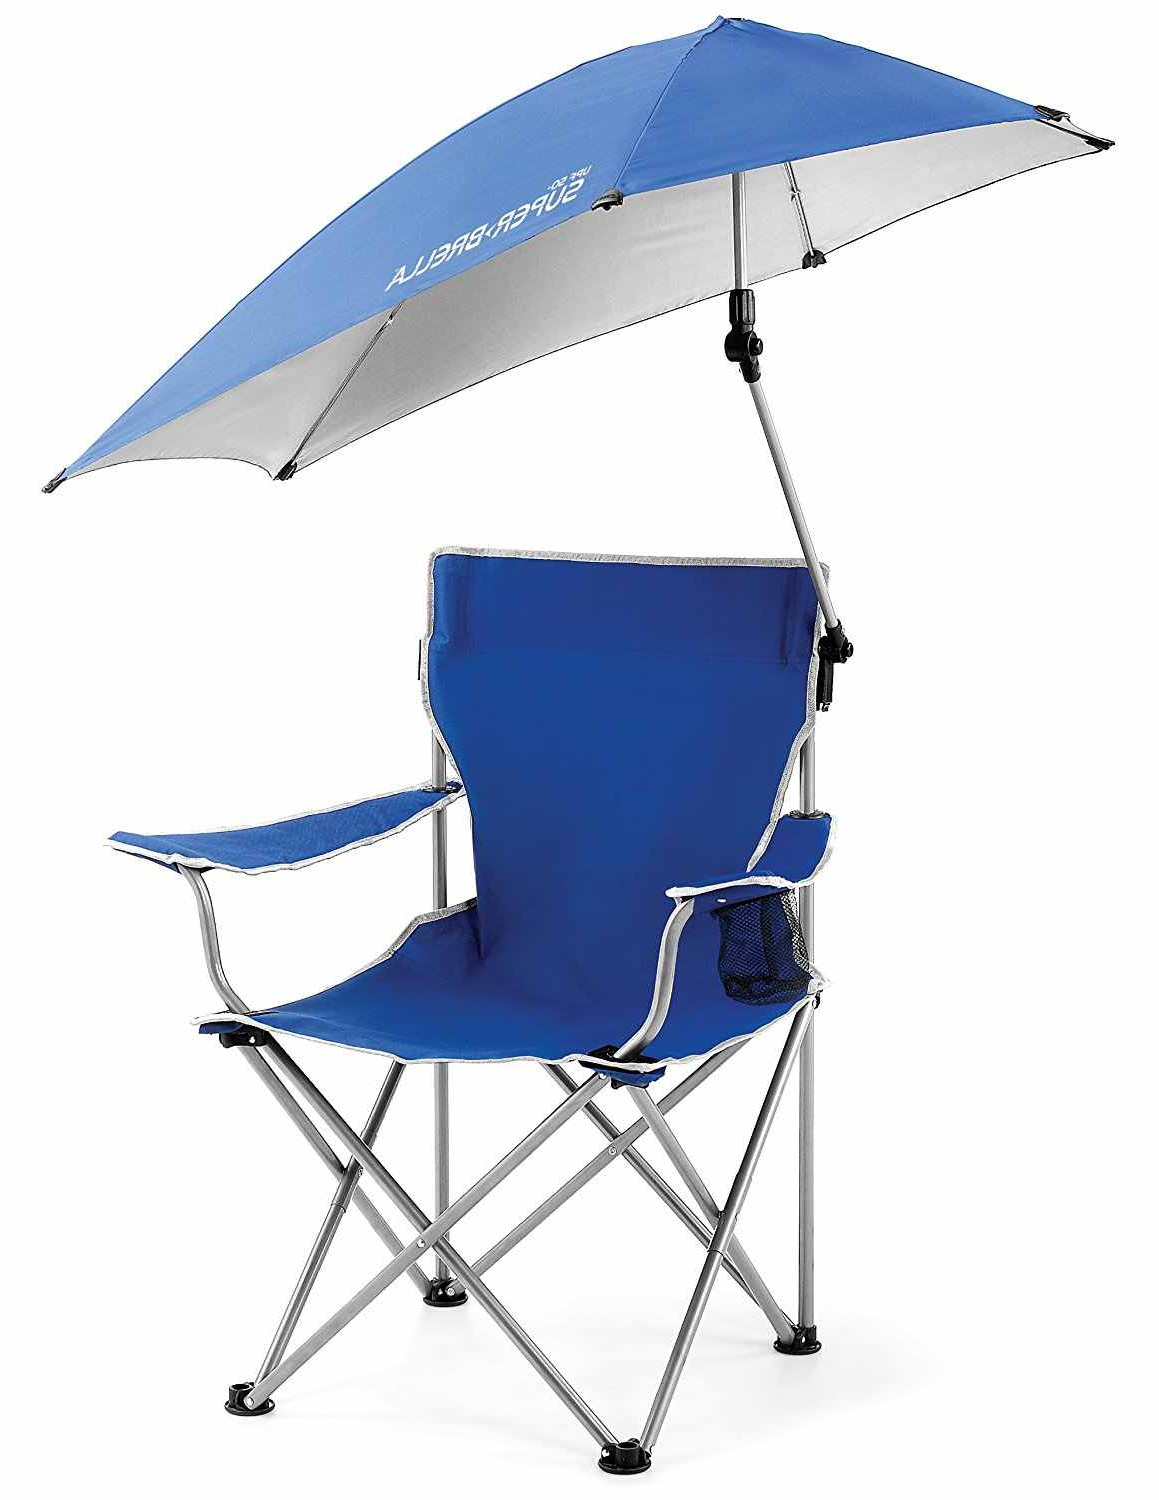 Outdoor Quik Shade Adjustable Canopy Folding Camp Chair Inside Famous Portable Extendable Folding Reclining Chairs (View 25 of 25)